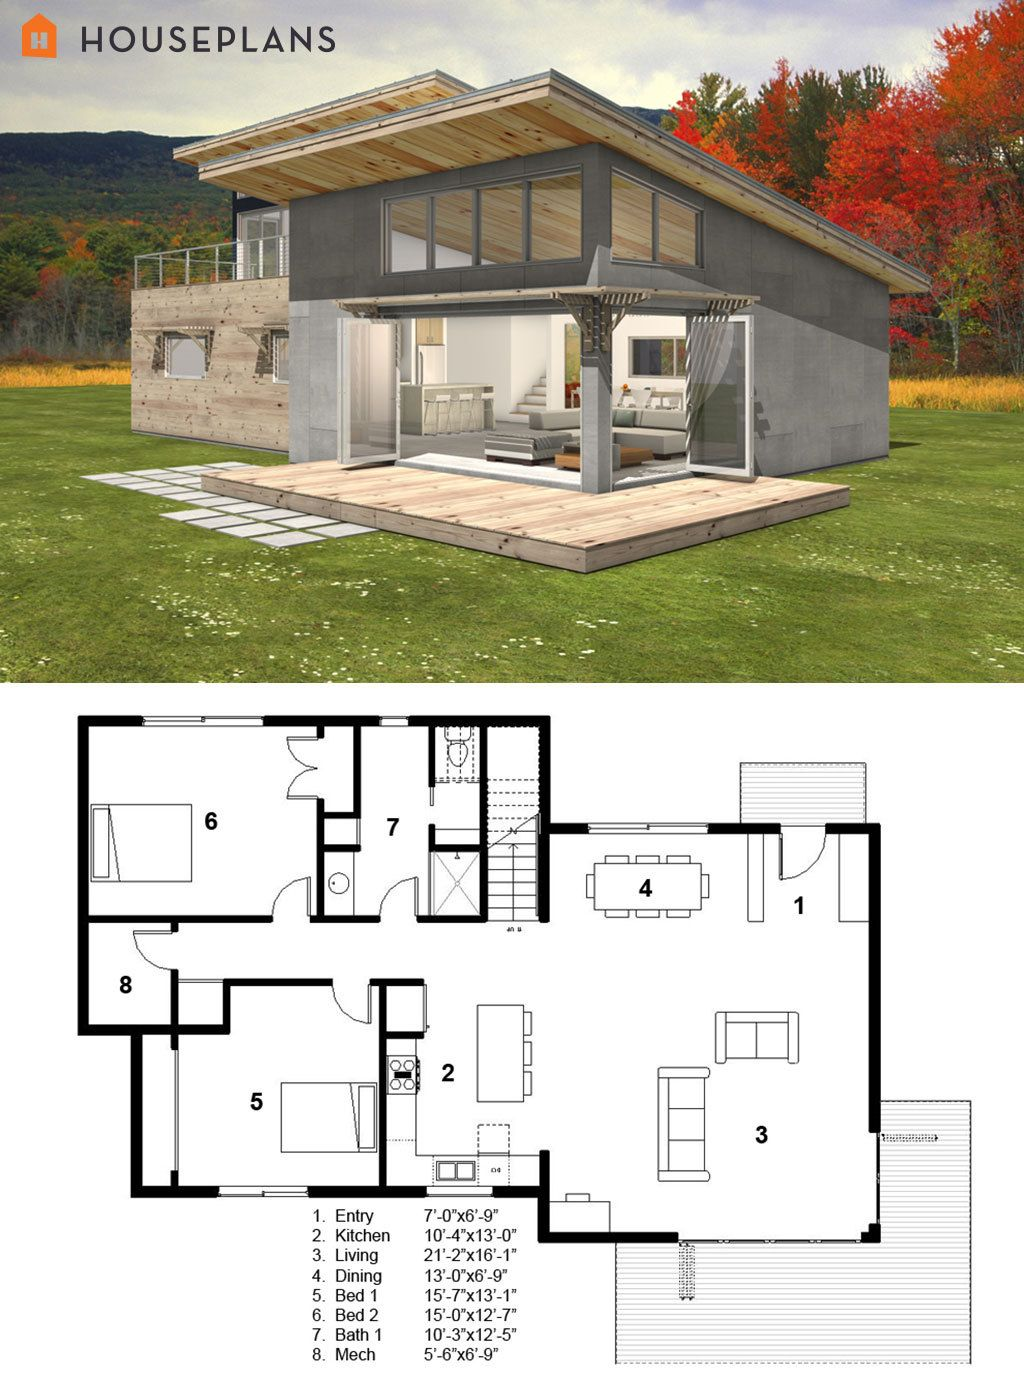 Modern Style House Plan 3 Beds Baths 2115 Sq Ft